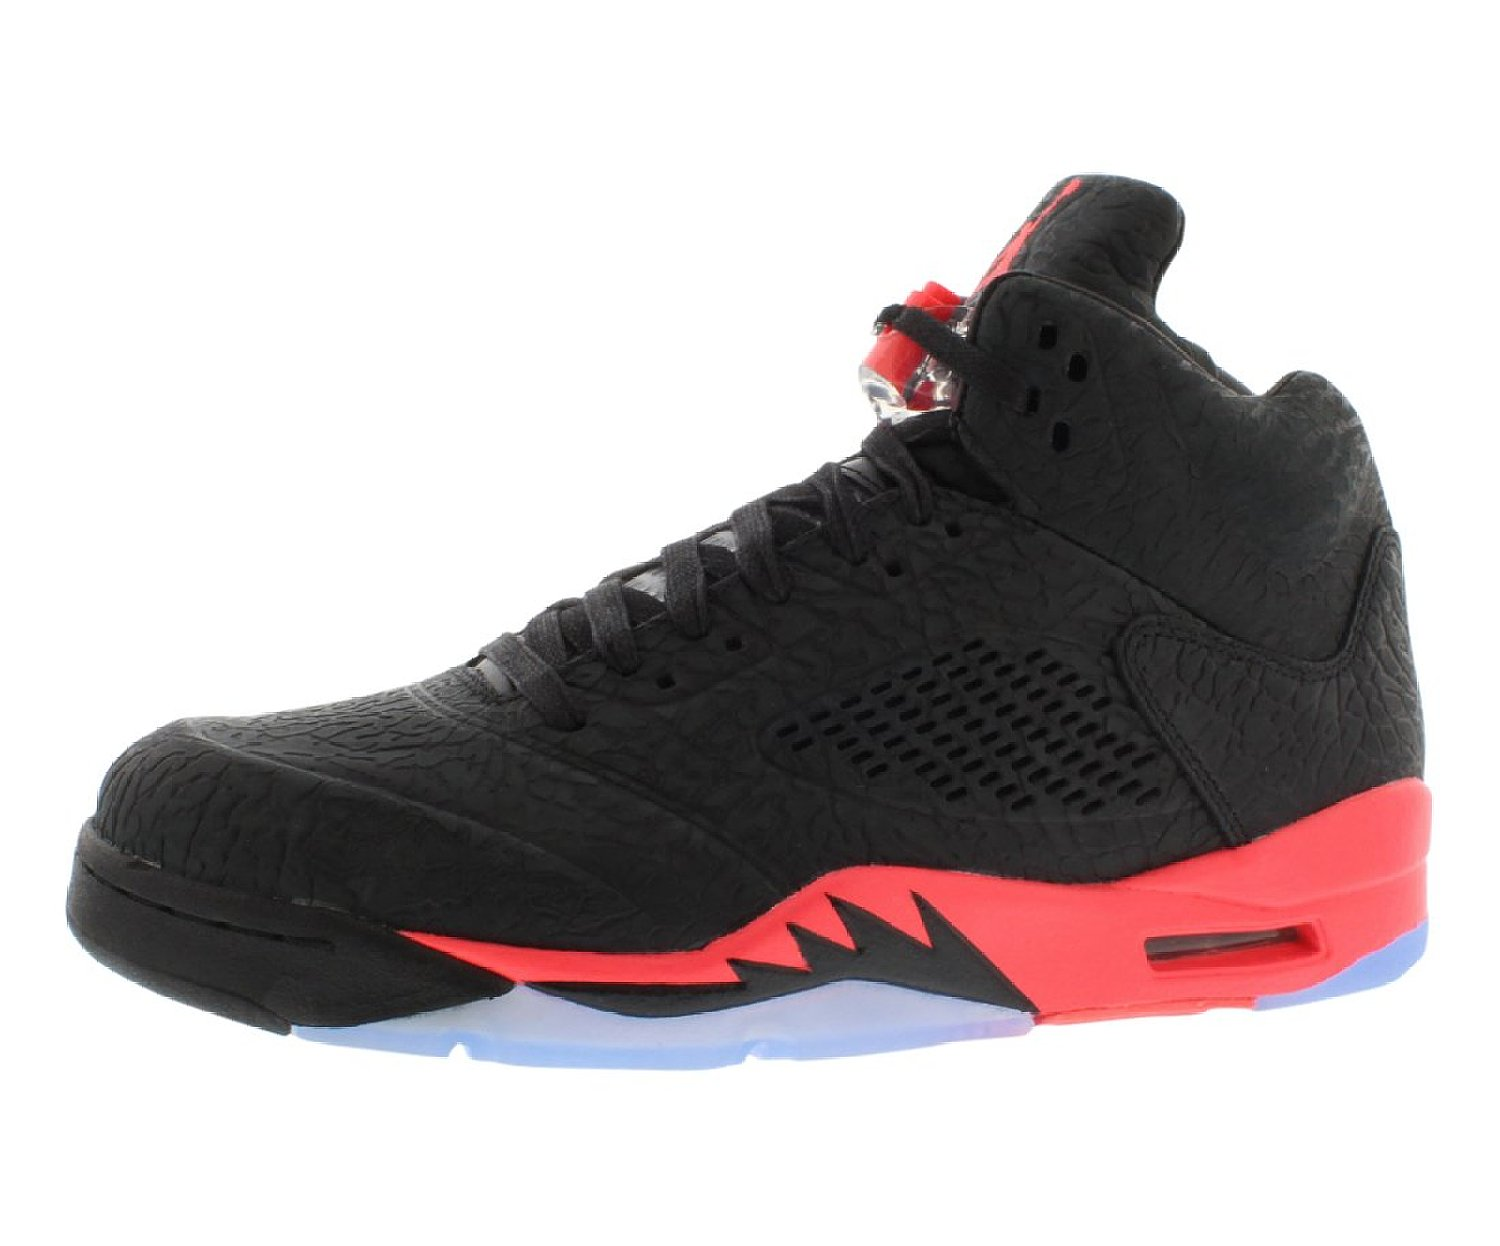 03cdab052d1c6 Get Quotations · Nike Air Trainer 3 (GS) 344950-401-5